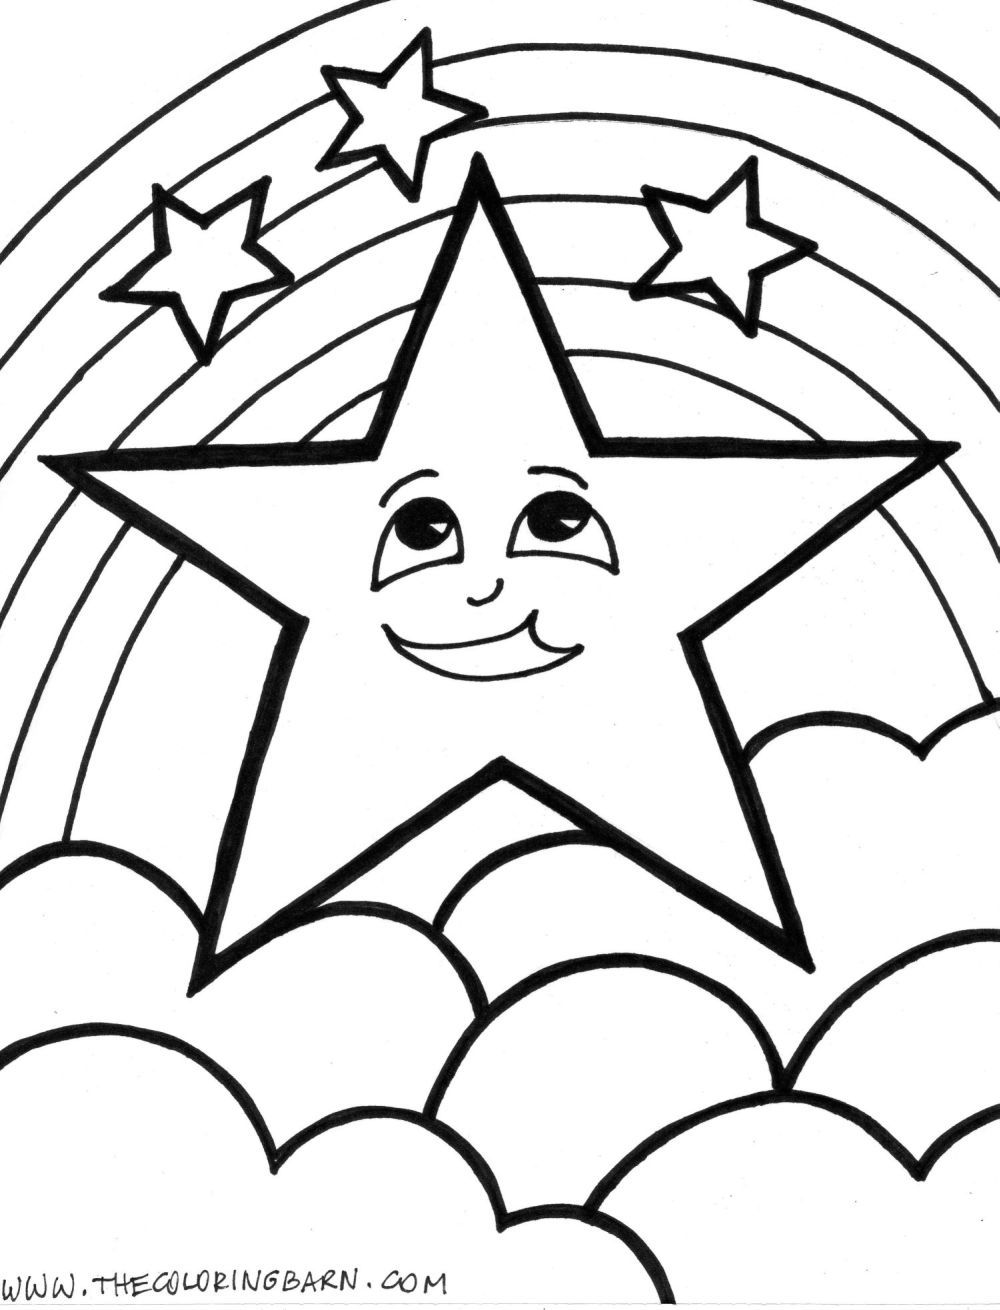 Star coloring page Ethan 39 s Birthday